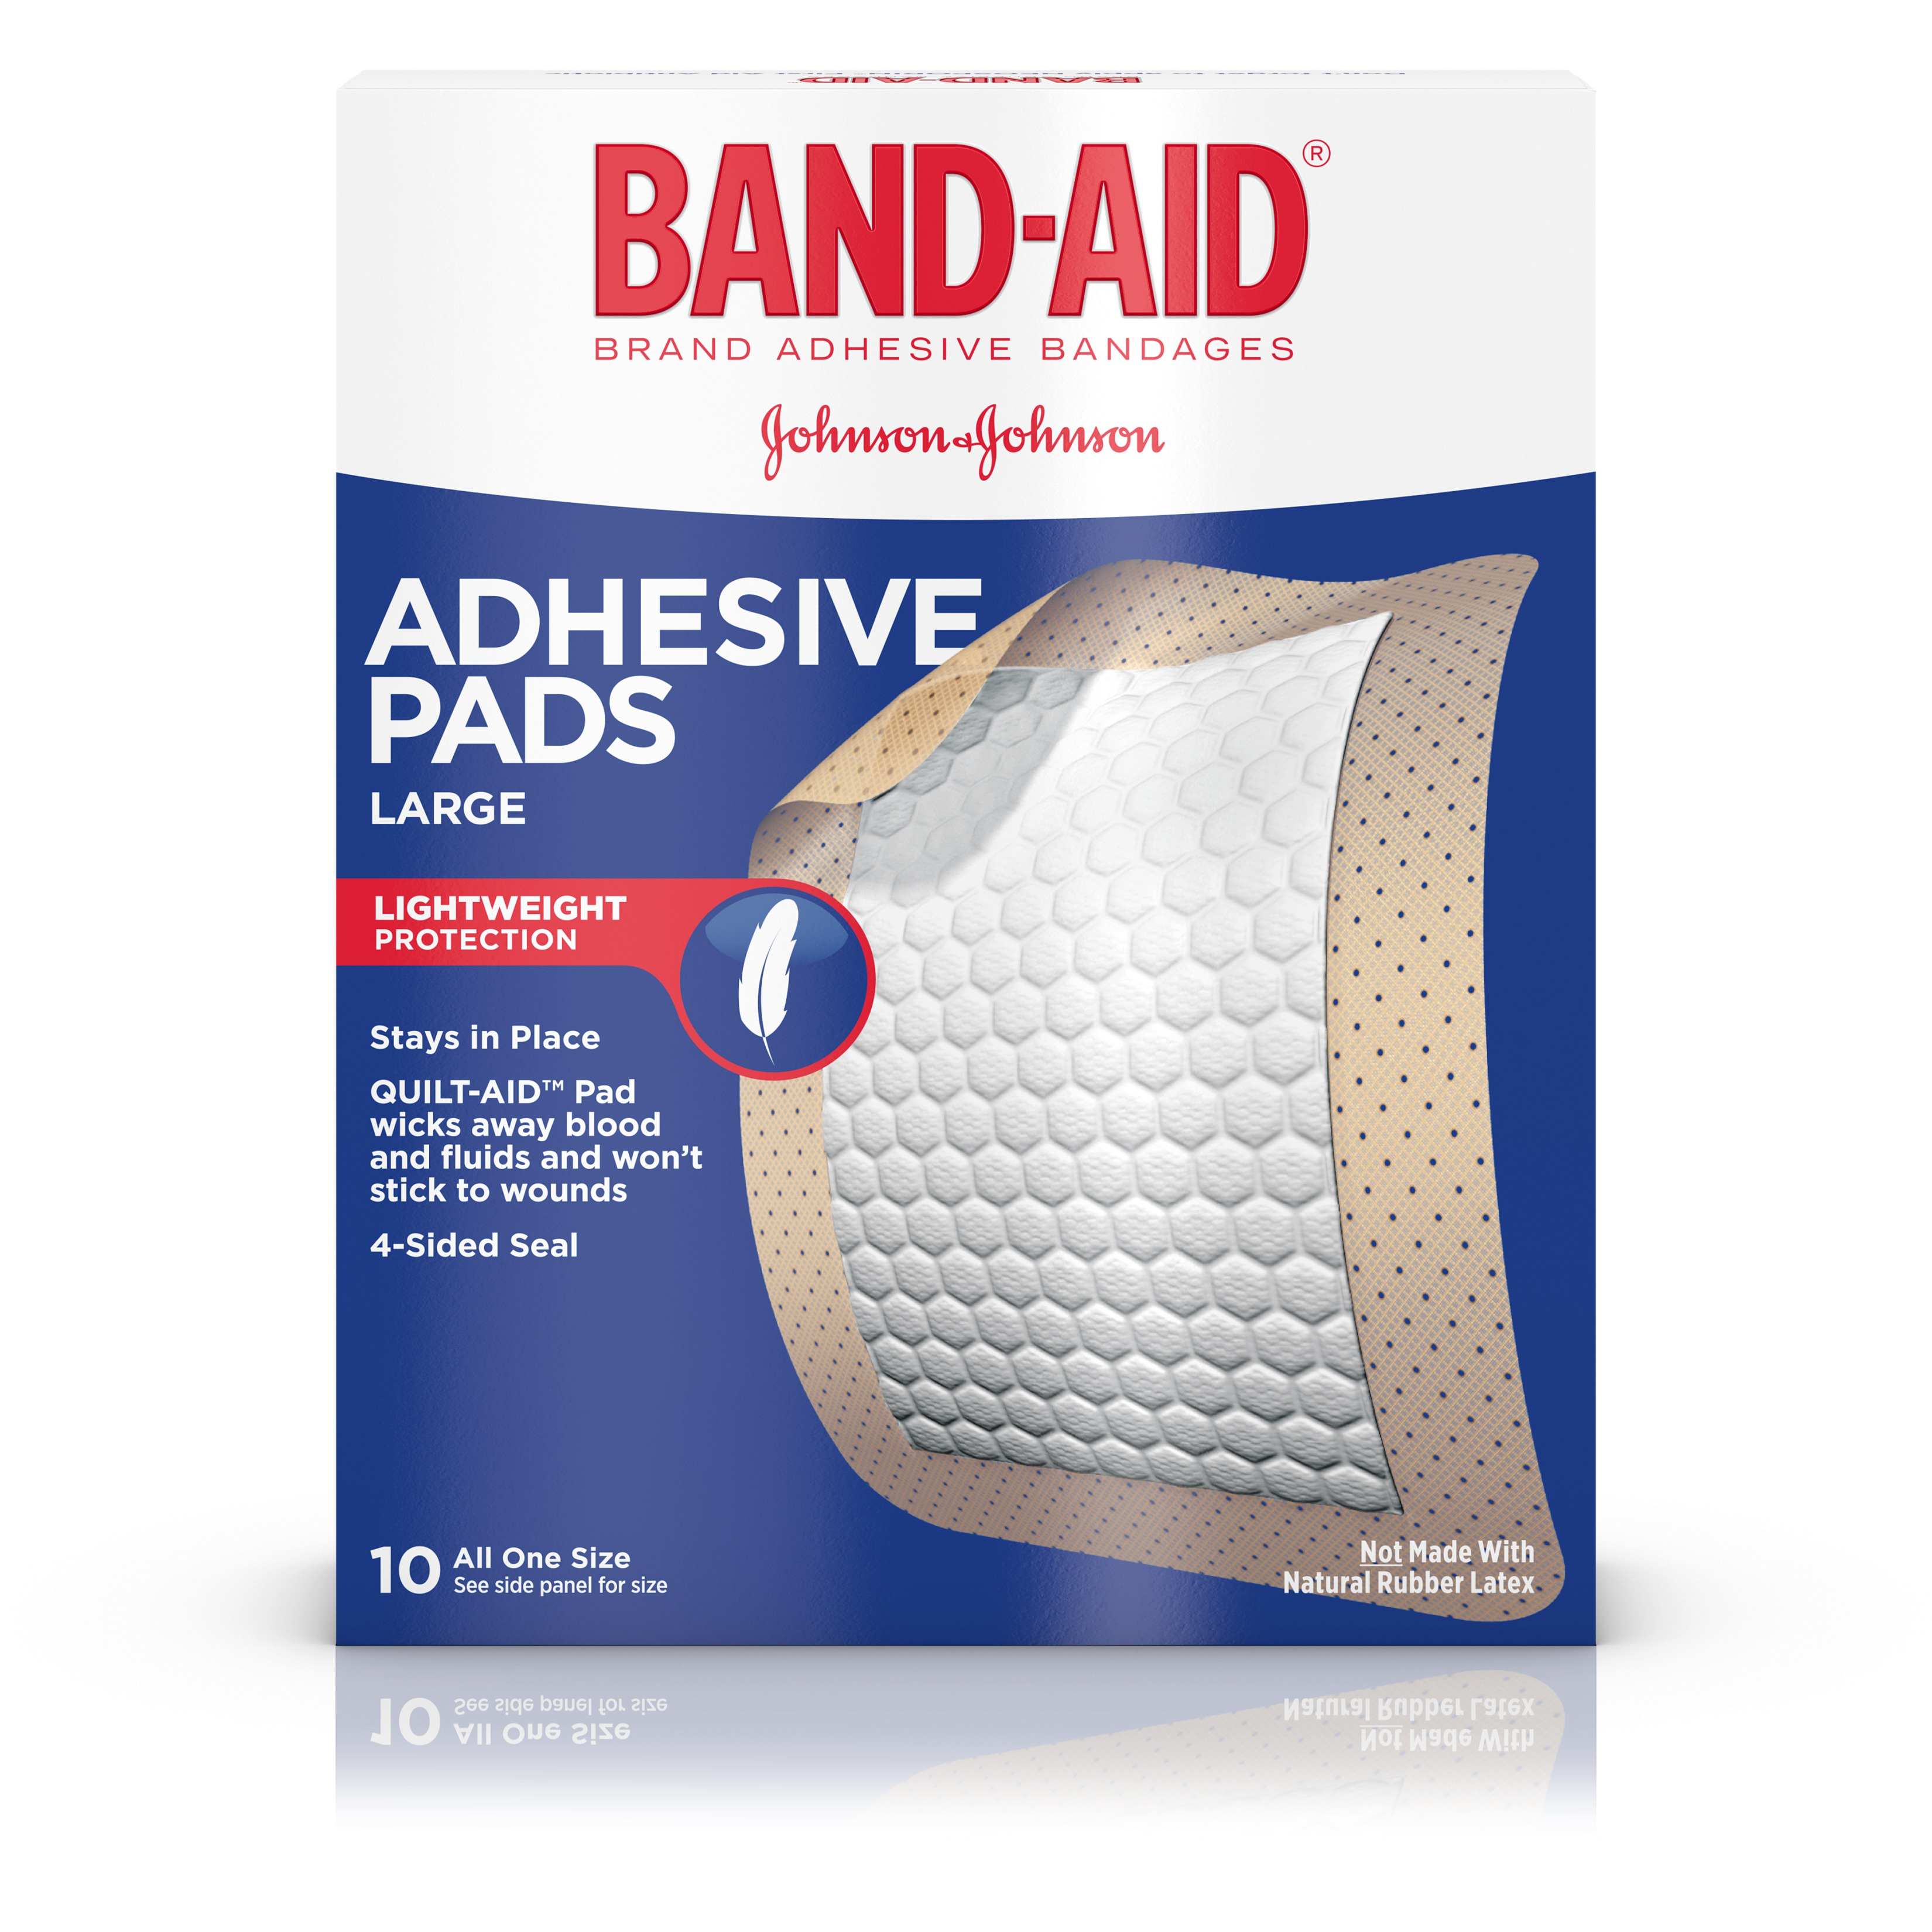 Band-Aid Brand Adhesive Pads, Large Bandages for Wound Care, 10 ct